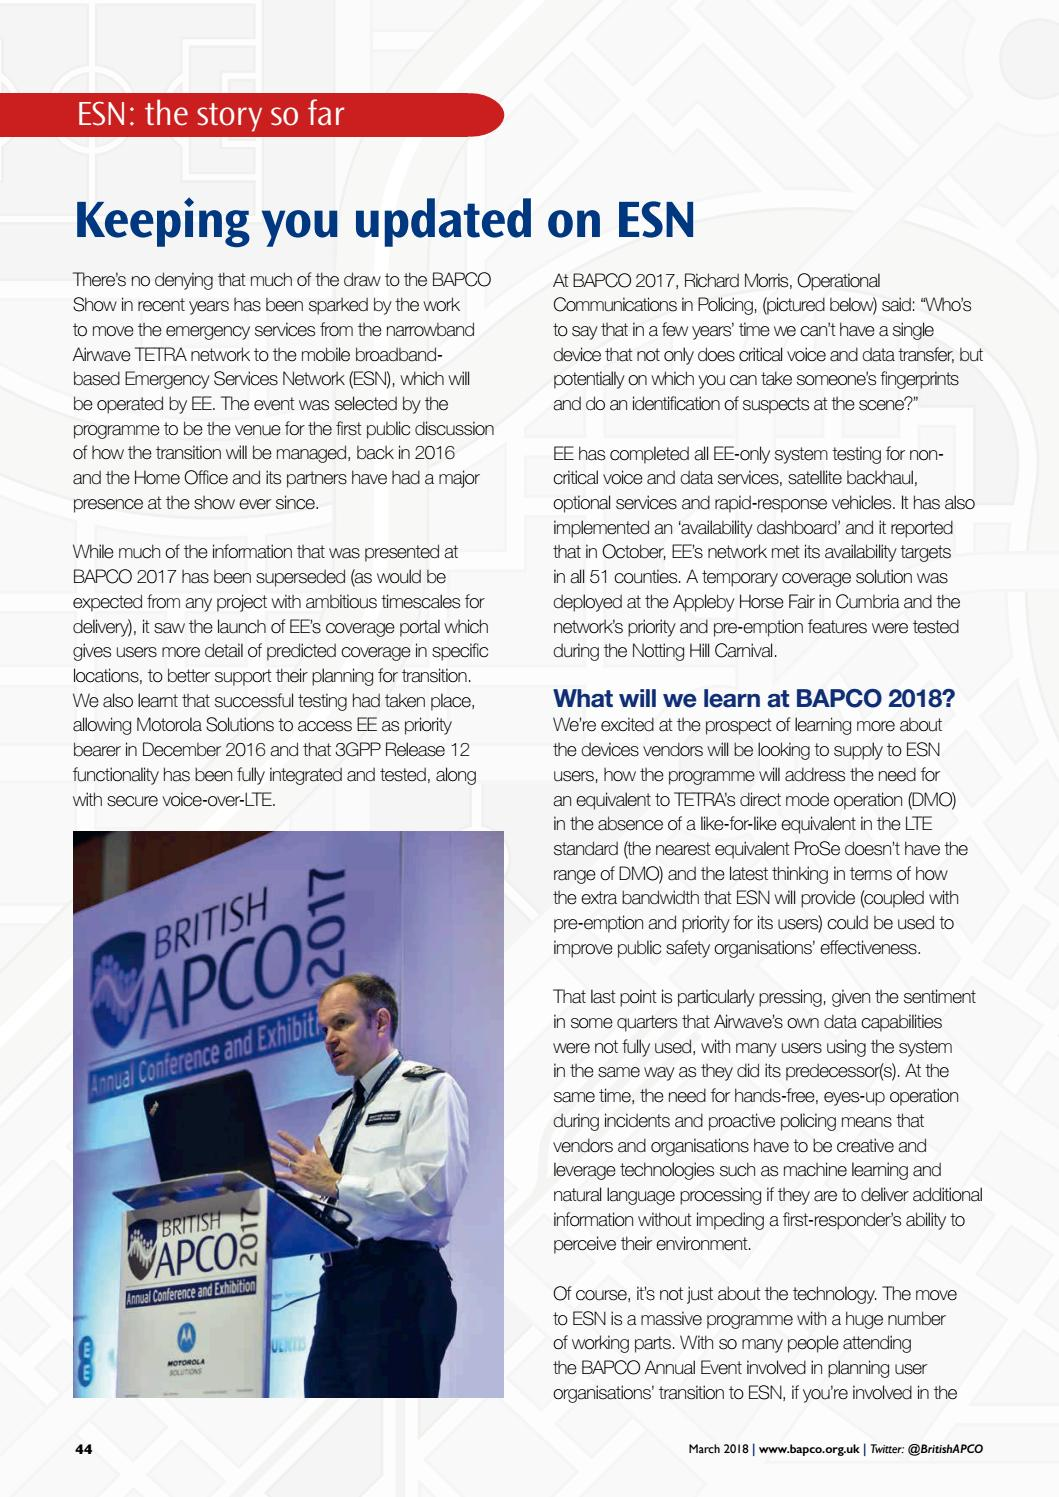 BAPCO Journal - March 2018 by Echo Events - issuu